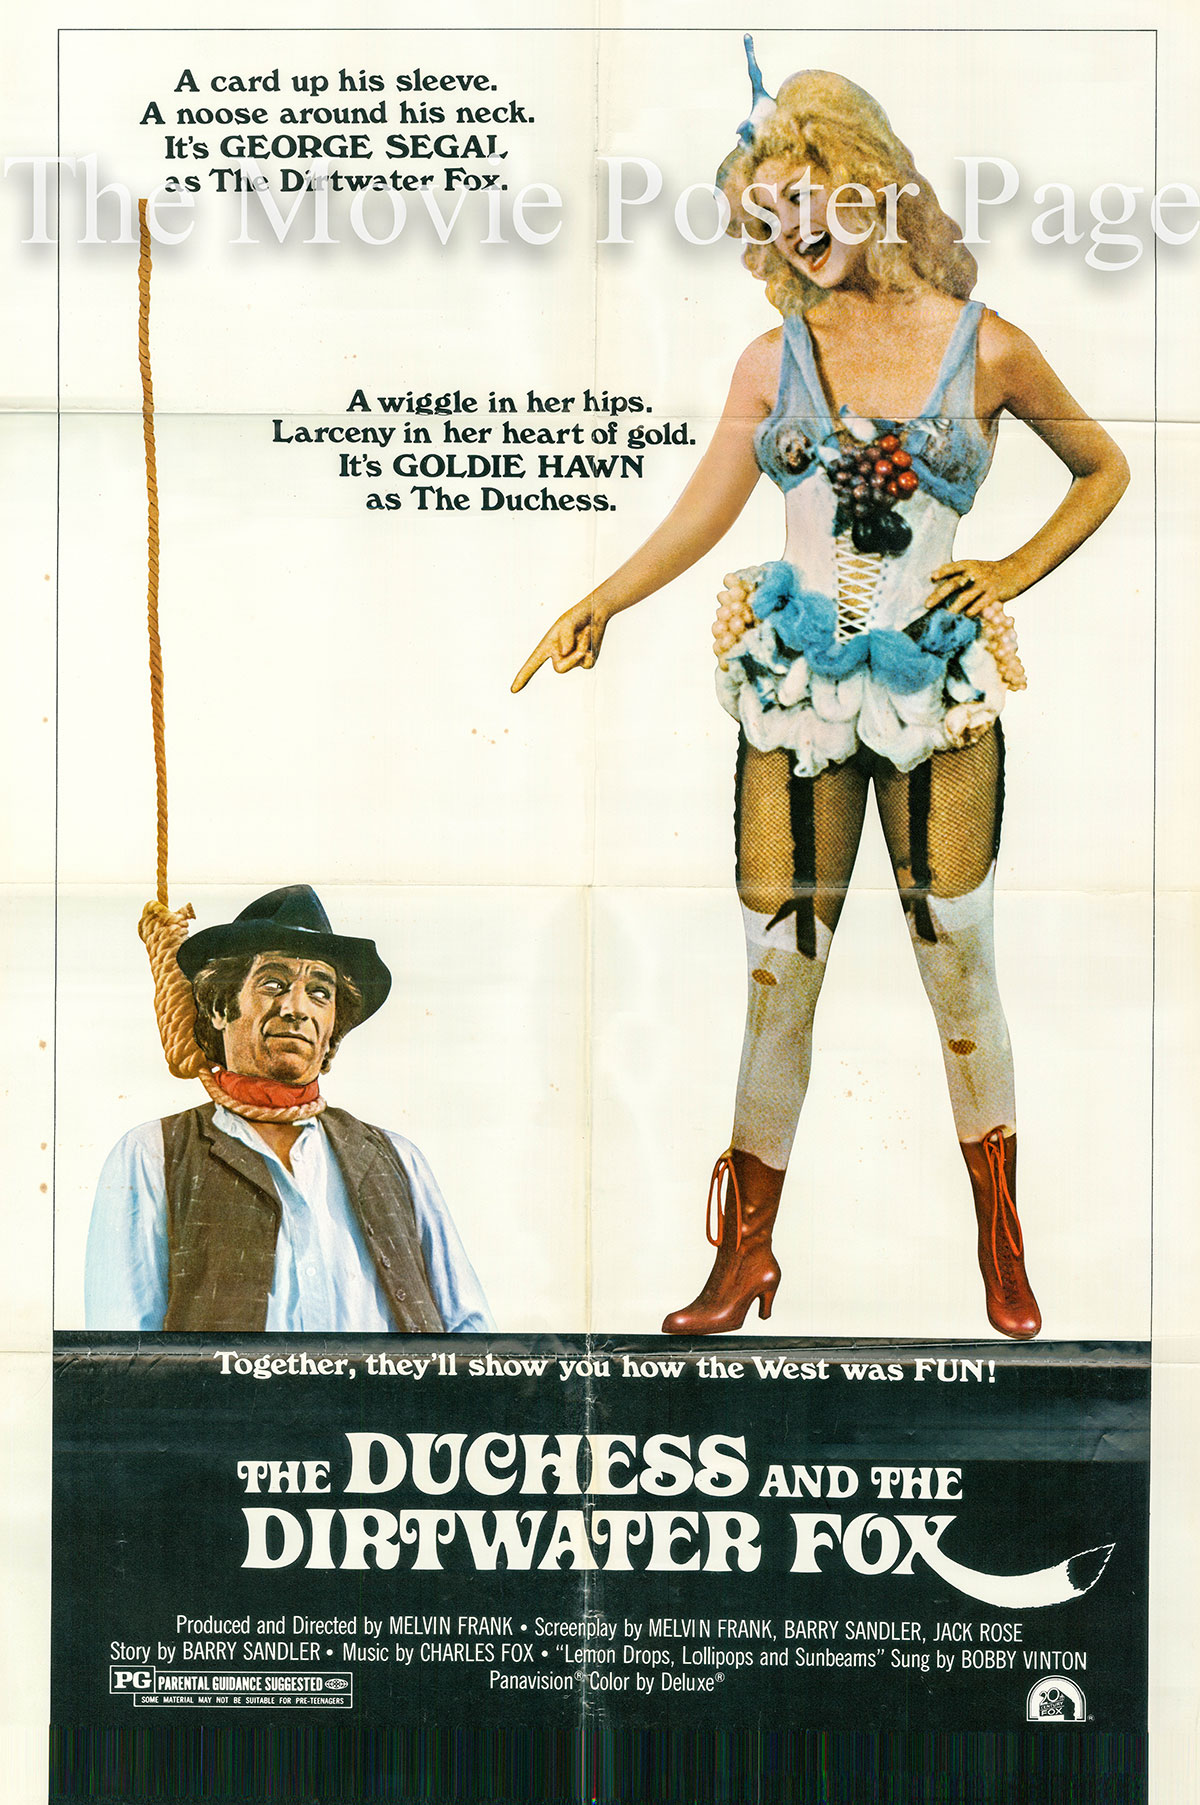 Pictured is a US one-sheet promotional poster for the 1976 Melvin Frank film The Duchess and the Dirtwater Fox starring George Segal as George Malloy.